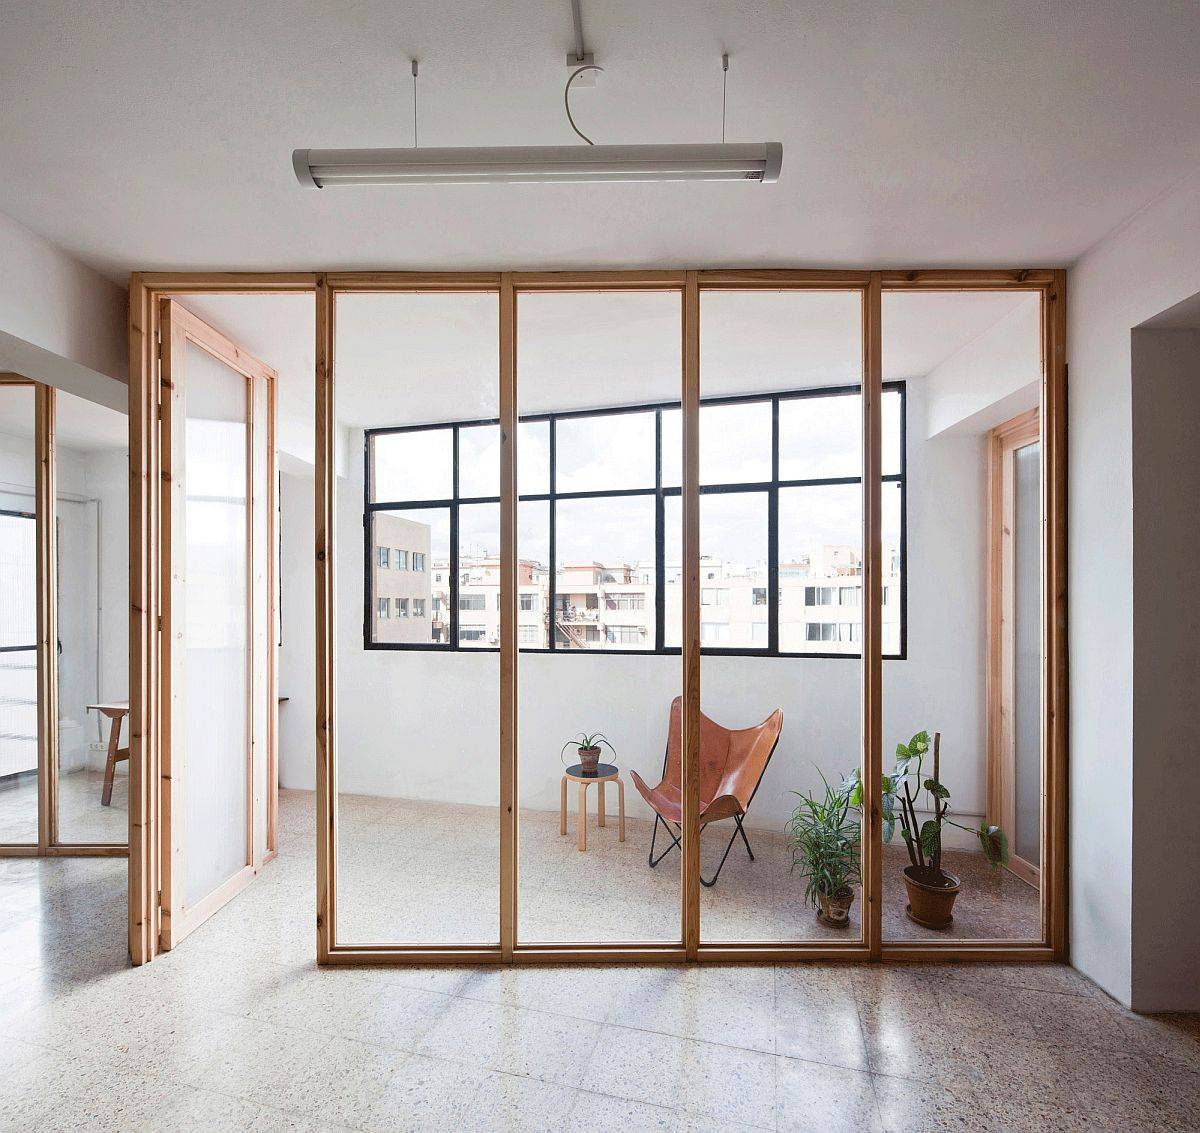 Space-between-the-window-walls-and-the-wooden-partitions-serves-as-the-covered-outdoor-area-89295